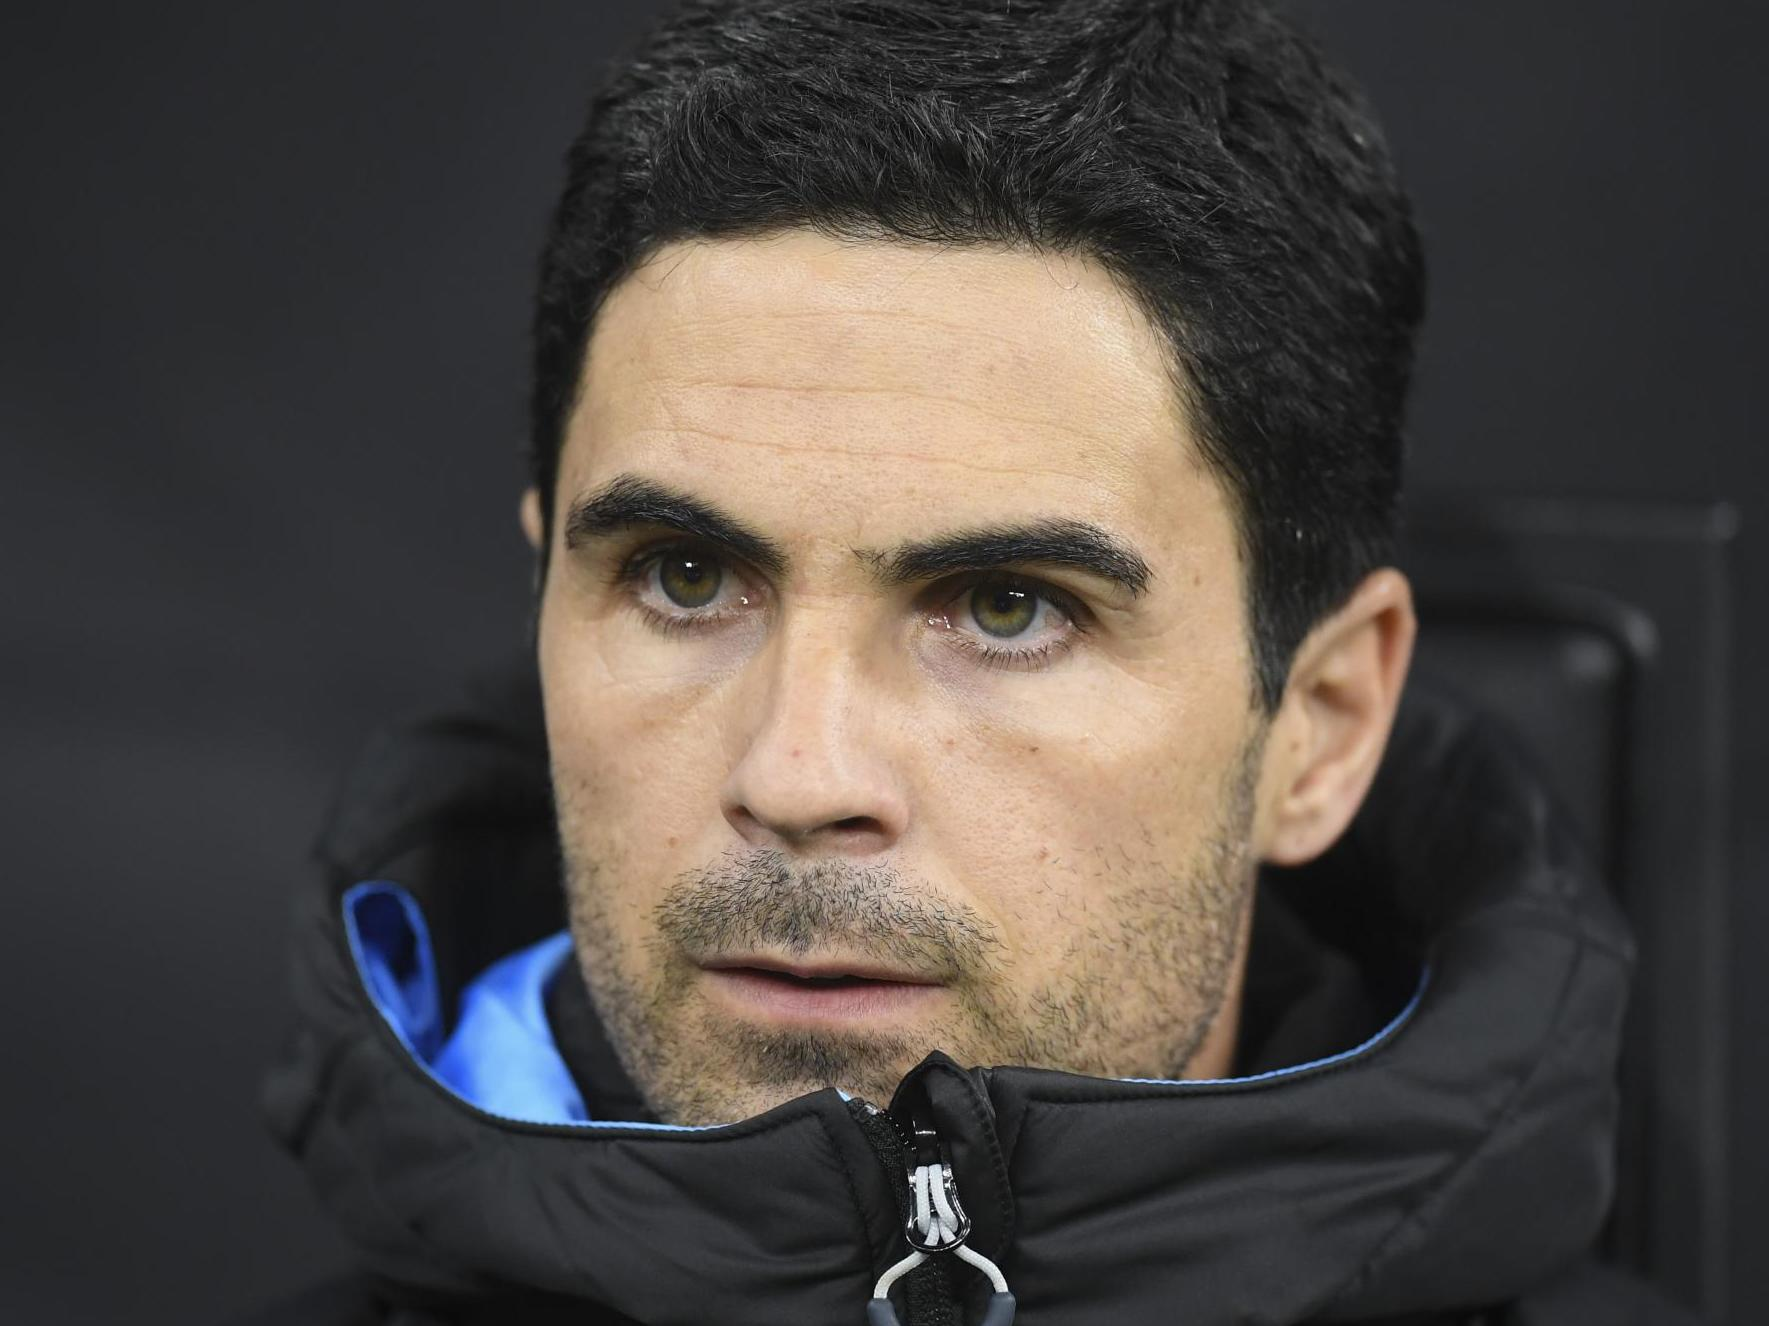 'Absolute mess' at Arsenal could scupper move to make Mikel Arteta next manager